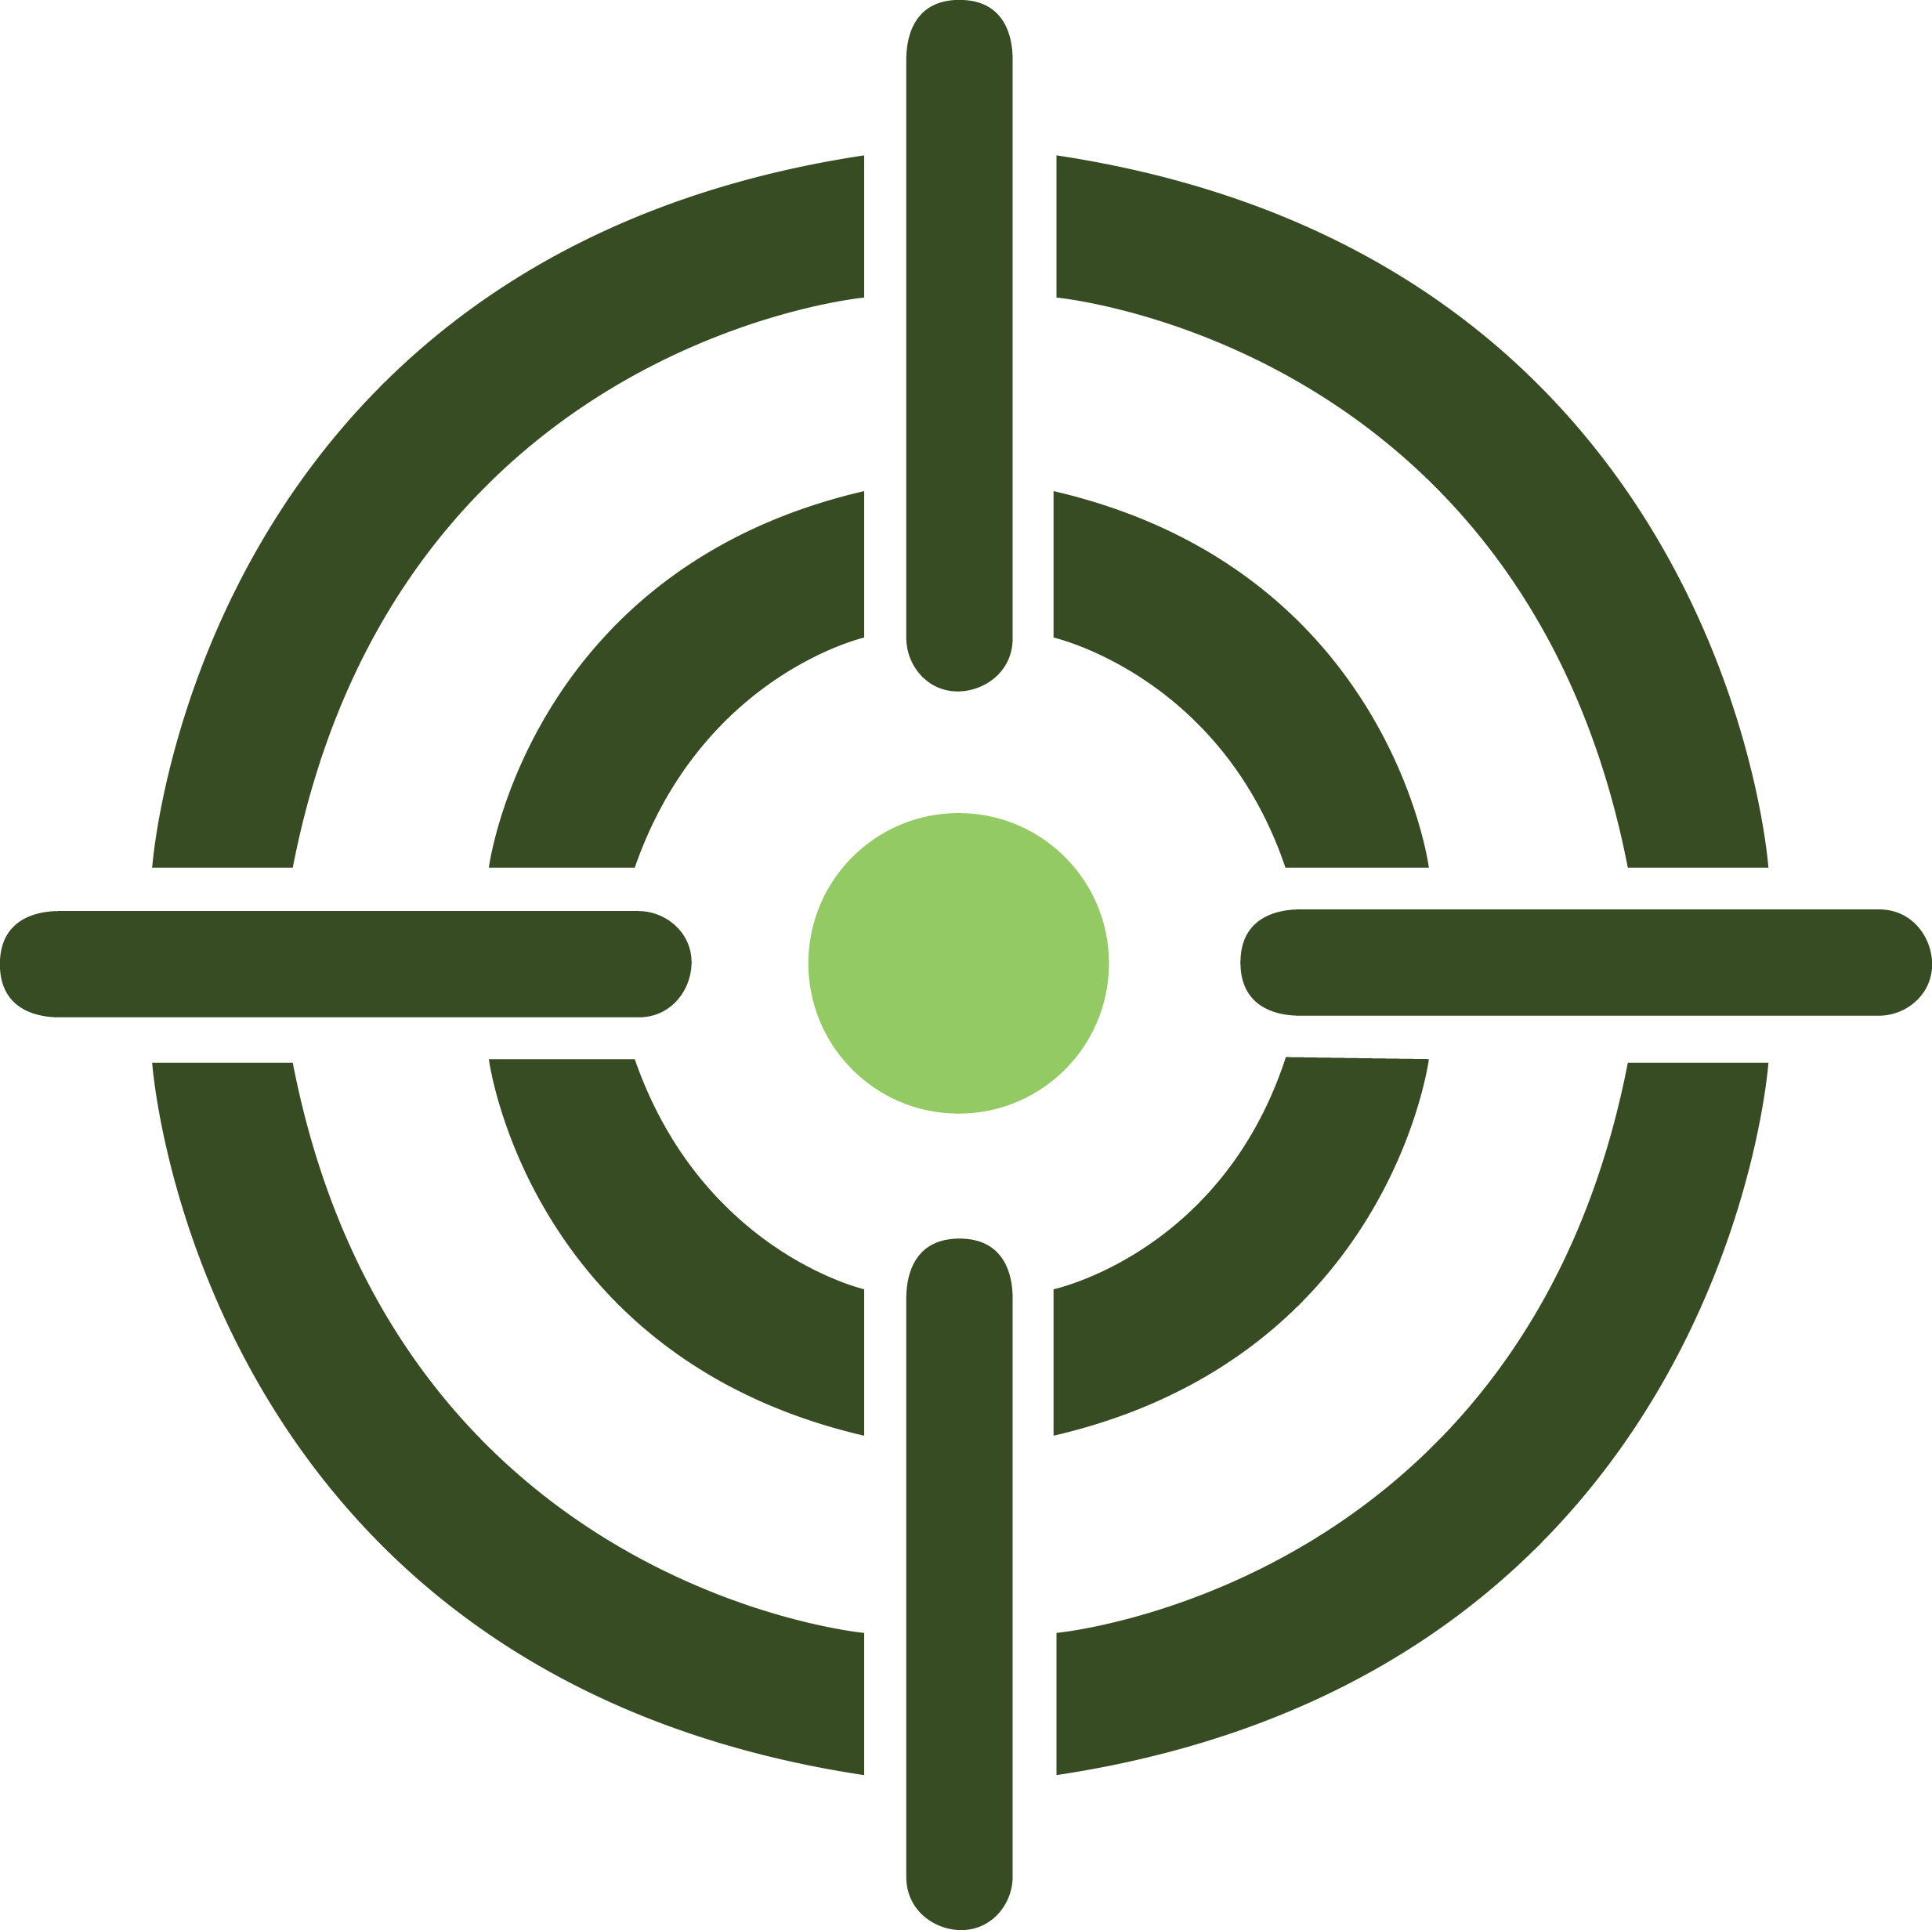 green-target.png